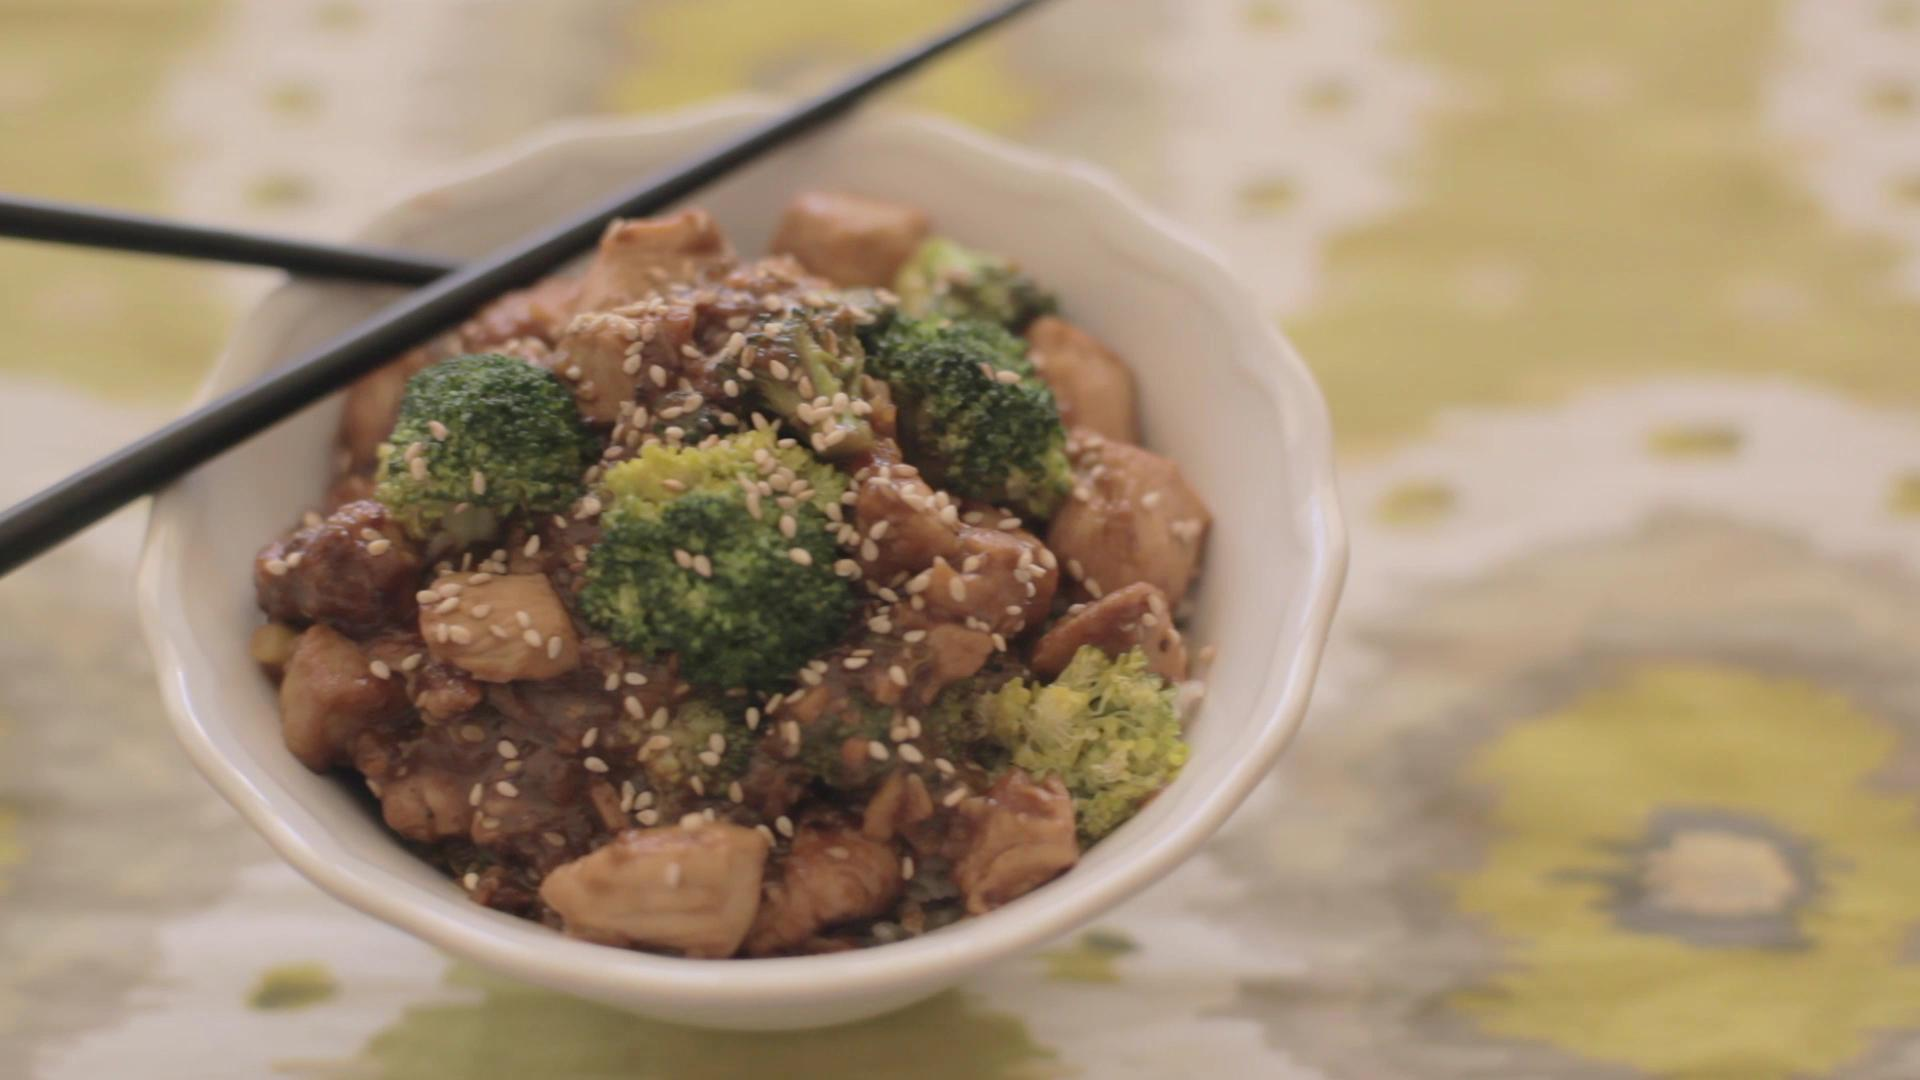 How to Make a Wok 'Fried' Chicken and Broccoli Bowl